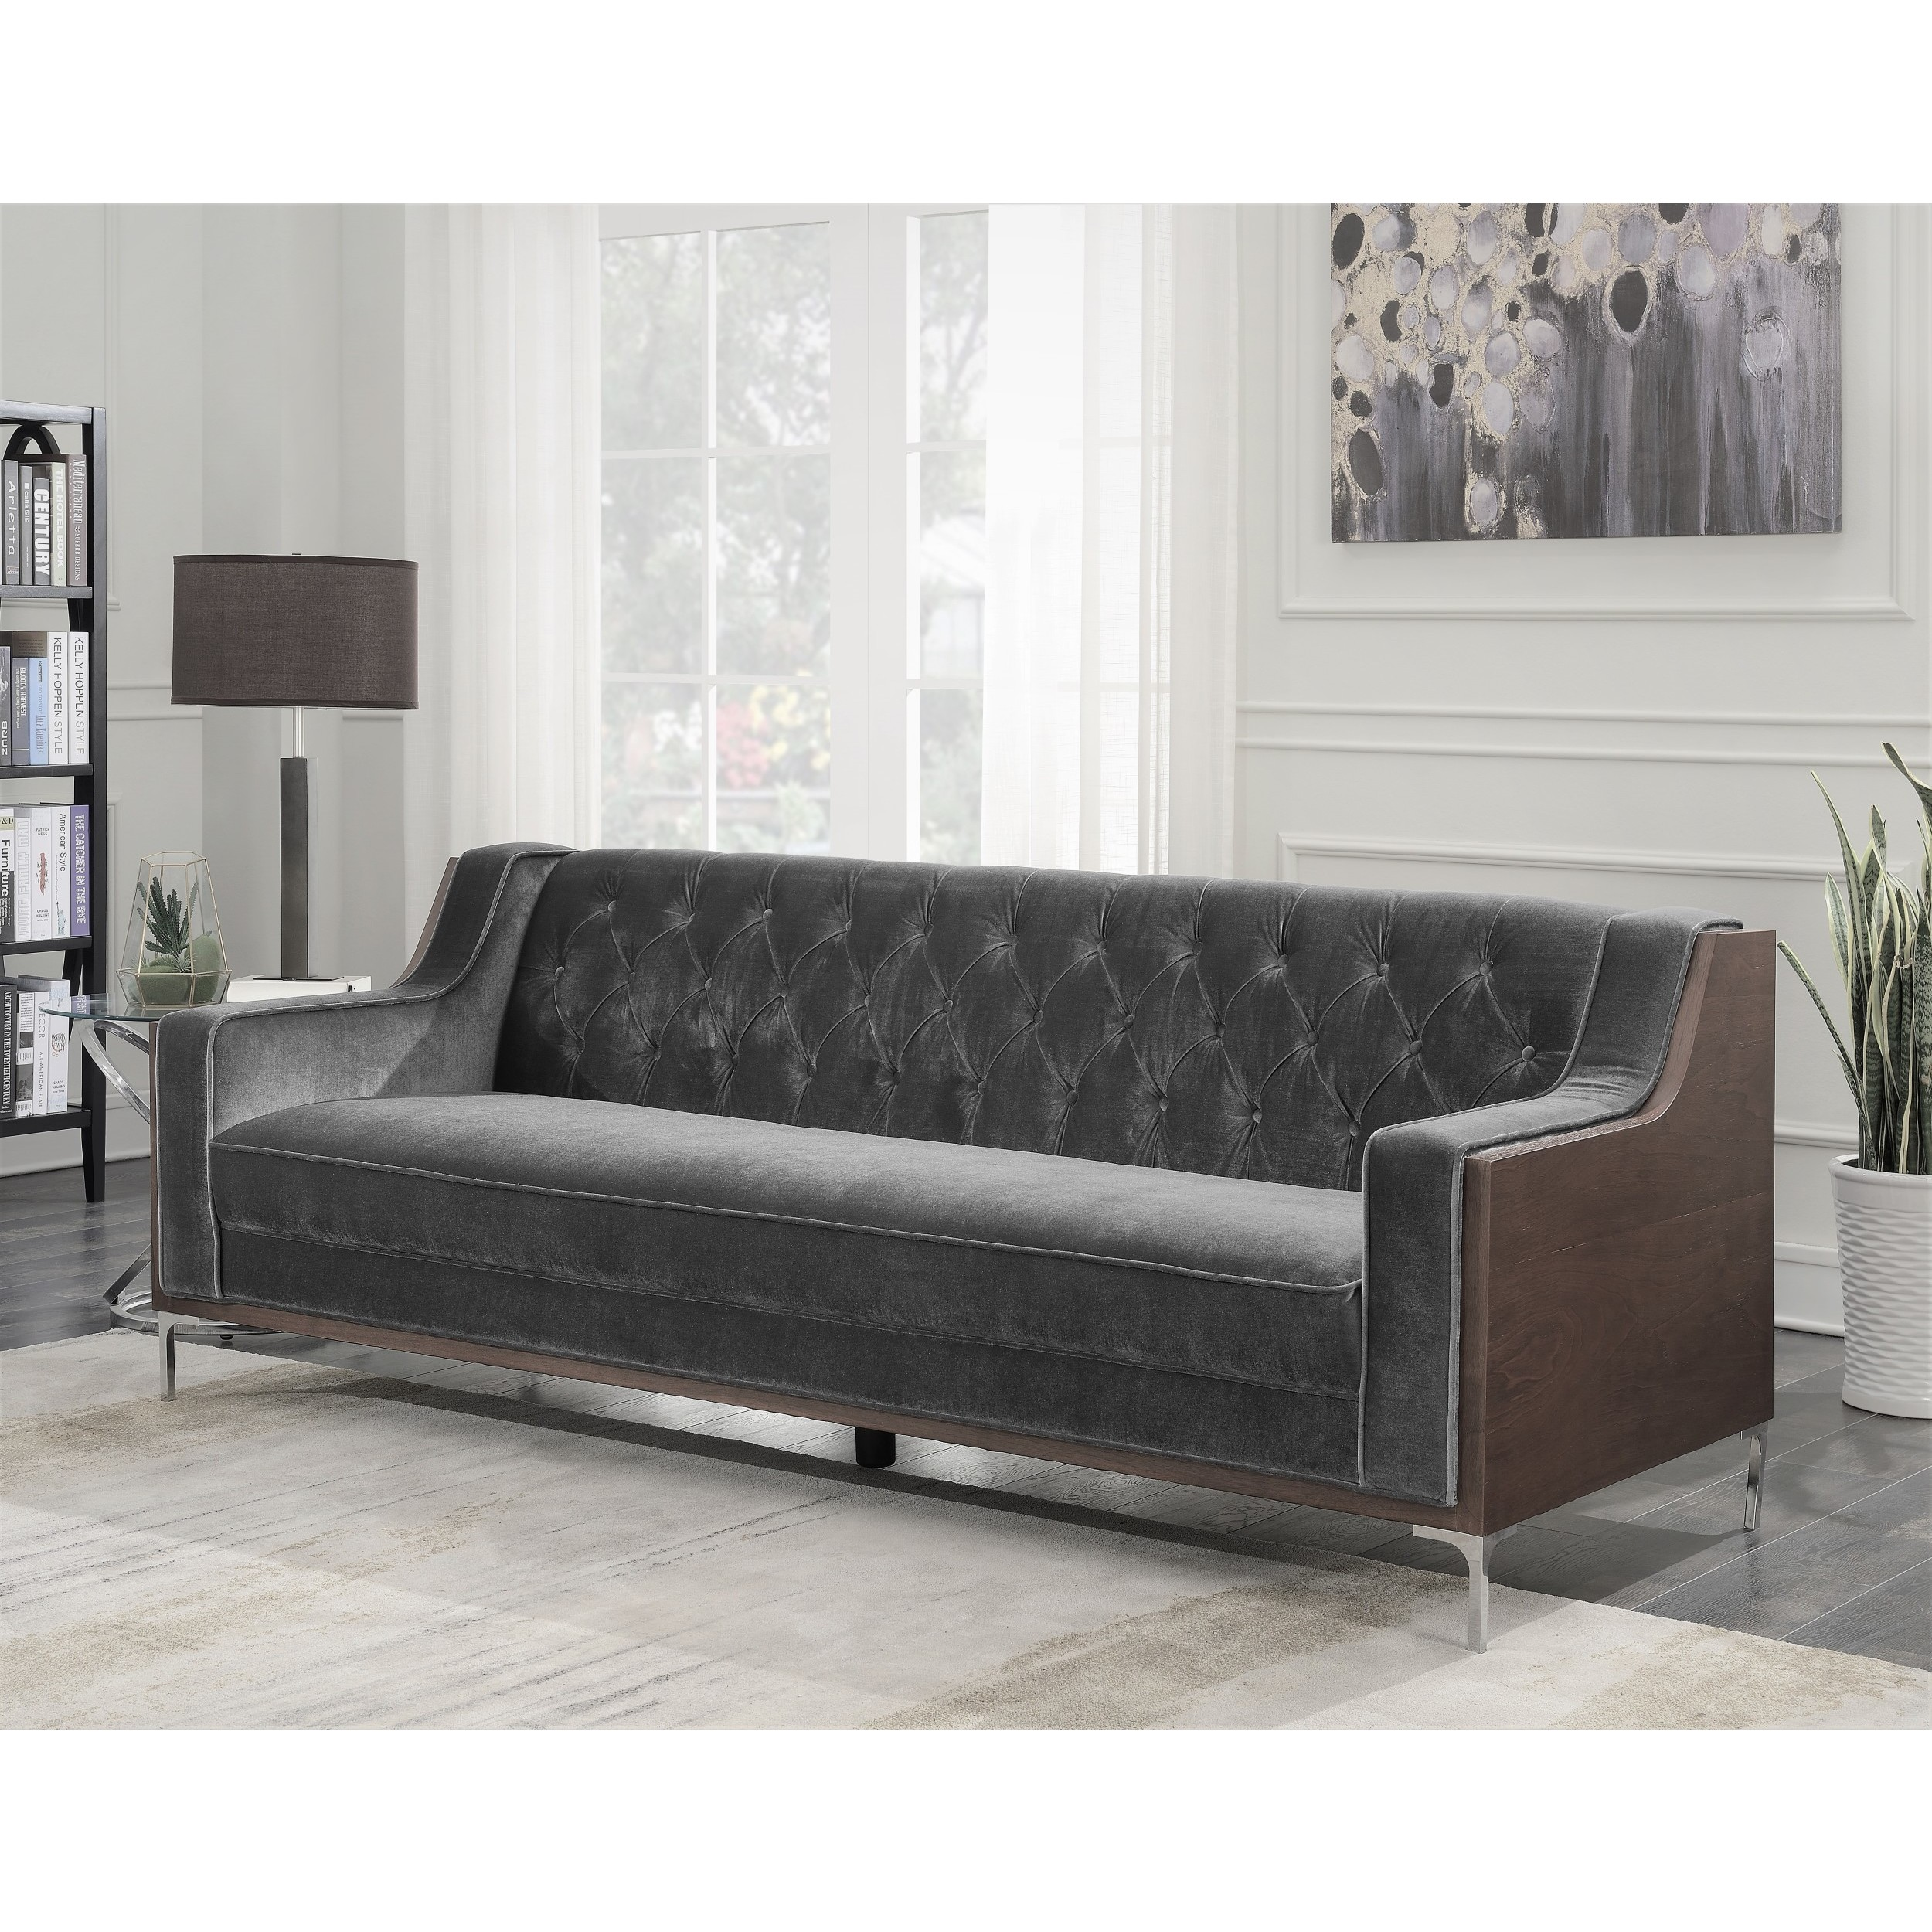 Shop Chic Home Parker Sofa Button Tufted Velvet Walnut Finish Swoop Arm  Wood Frame, Modern Contemporary   On Sale   Free Shipping Today    Overstock.com   ...